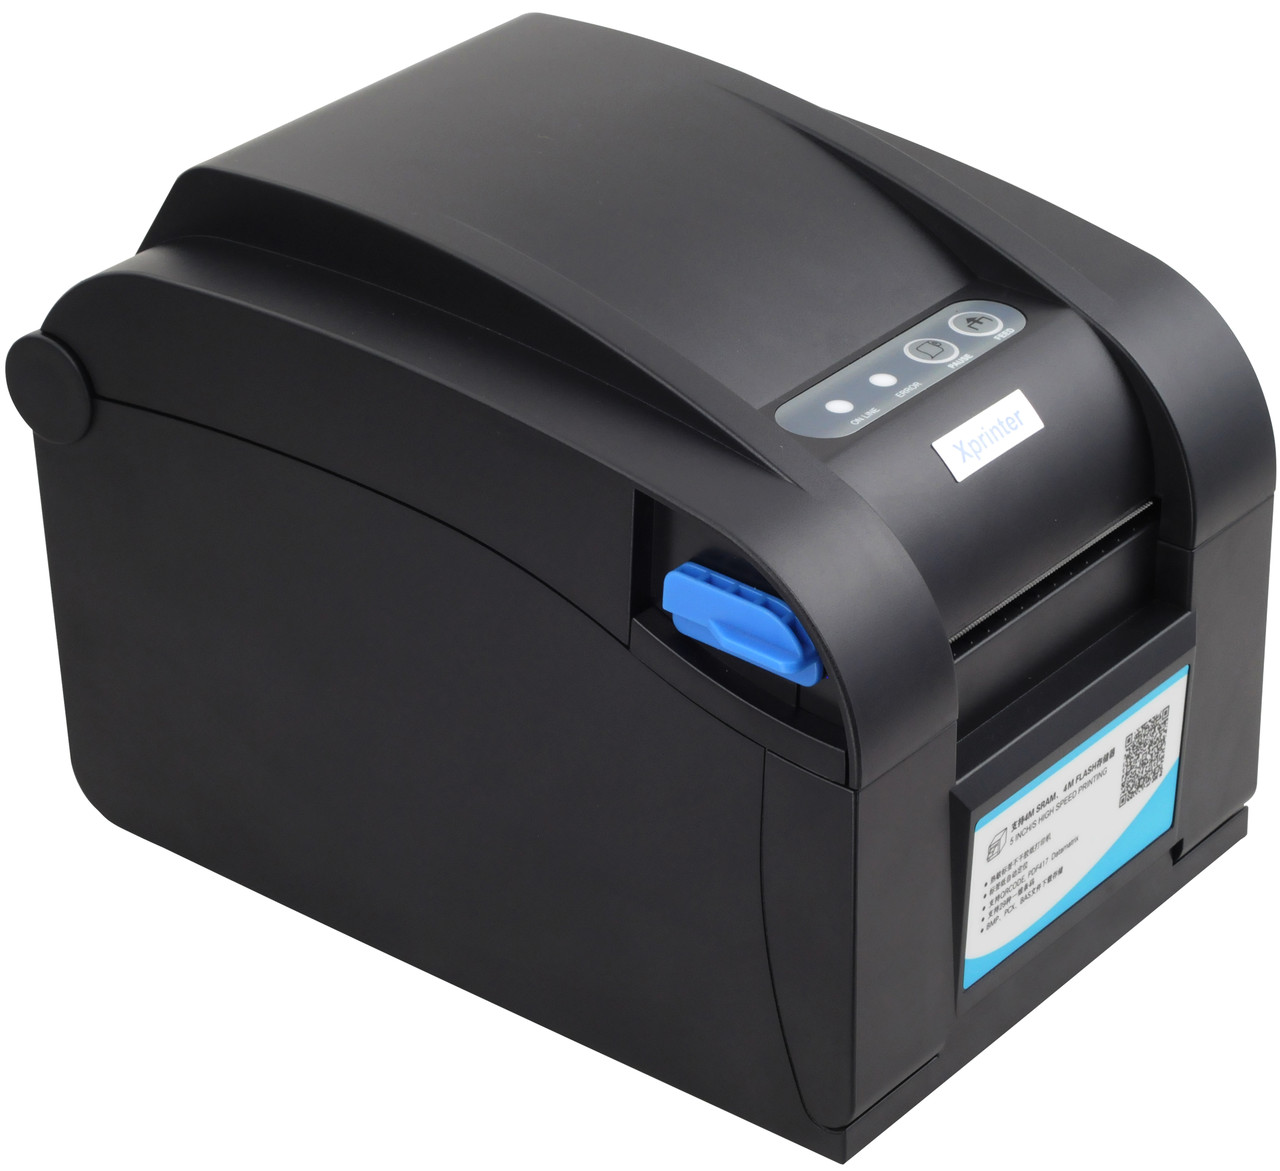 Принтер этикеток Xprinter XP-358BM Black (XP-358BM)